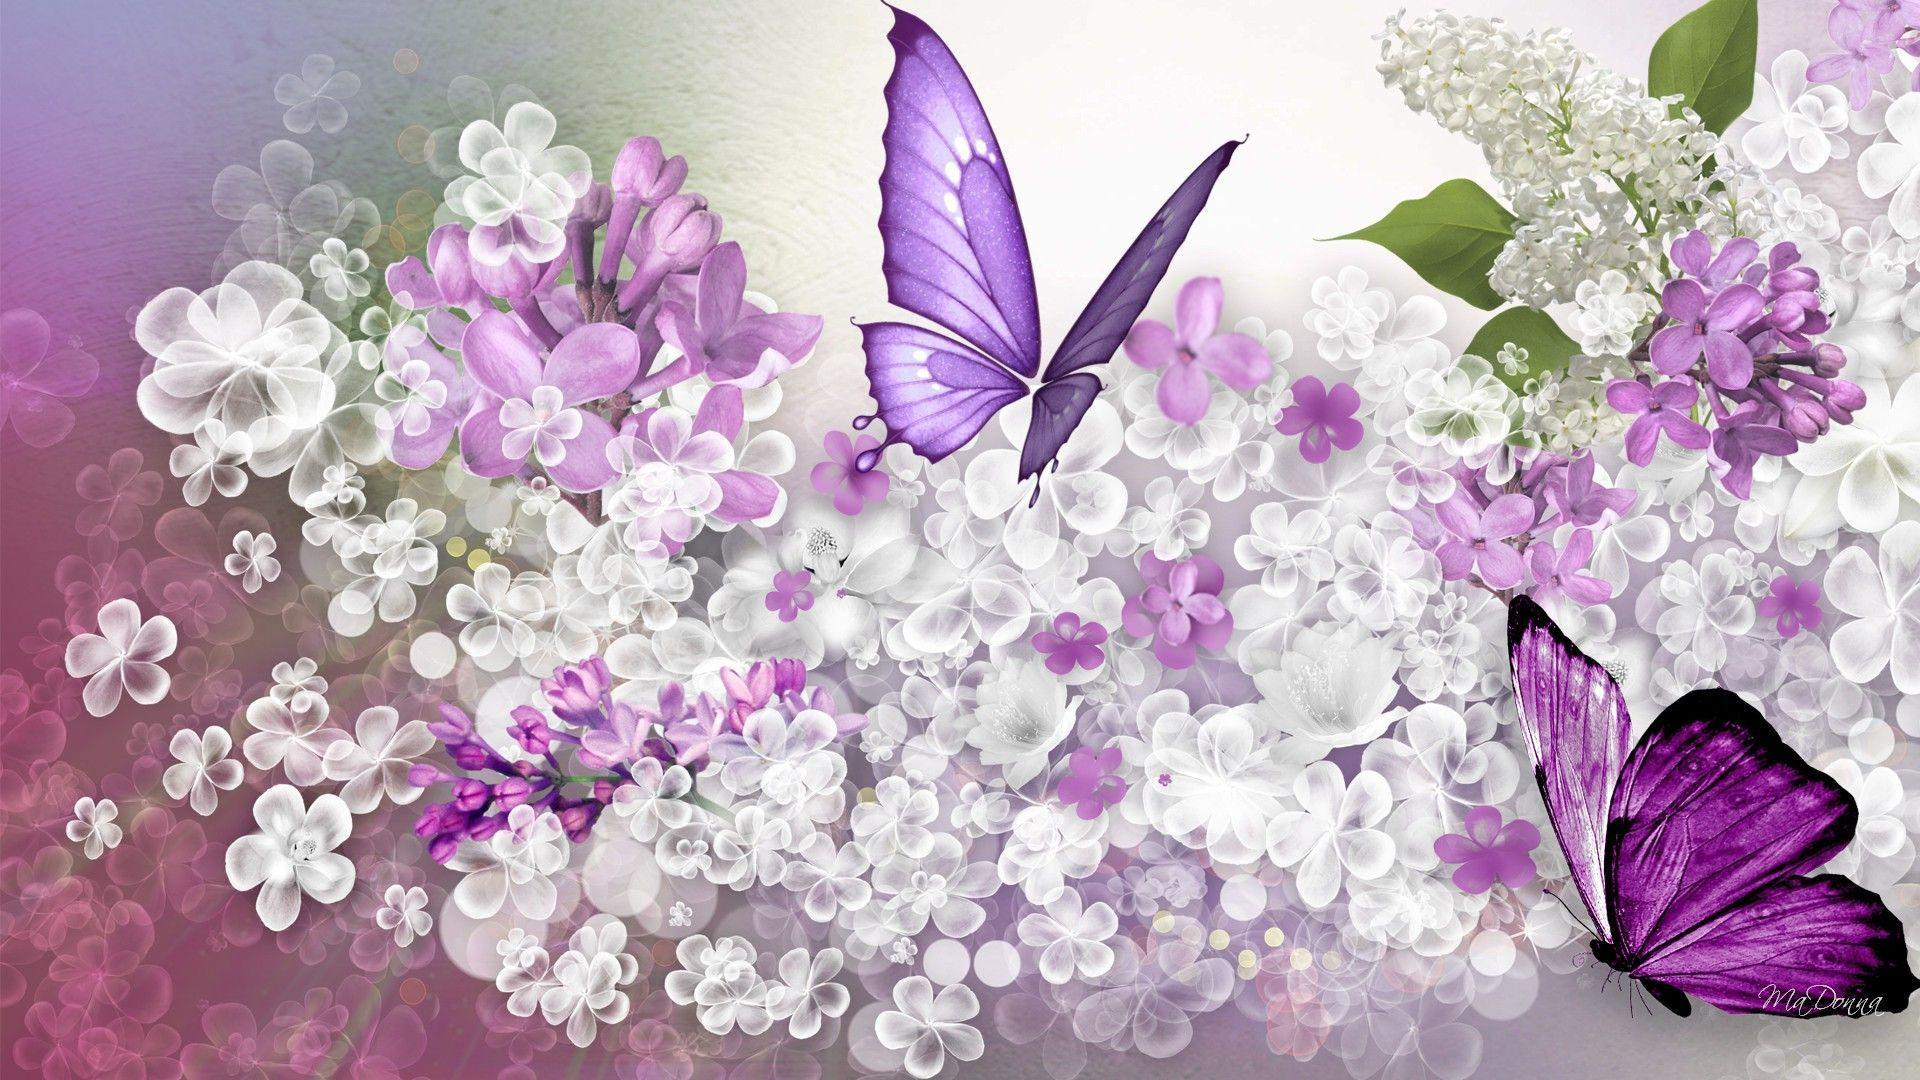 Lilac Flower Images Pixabay Download Free Pictures Lilac pictures to print